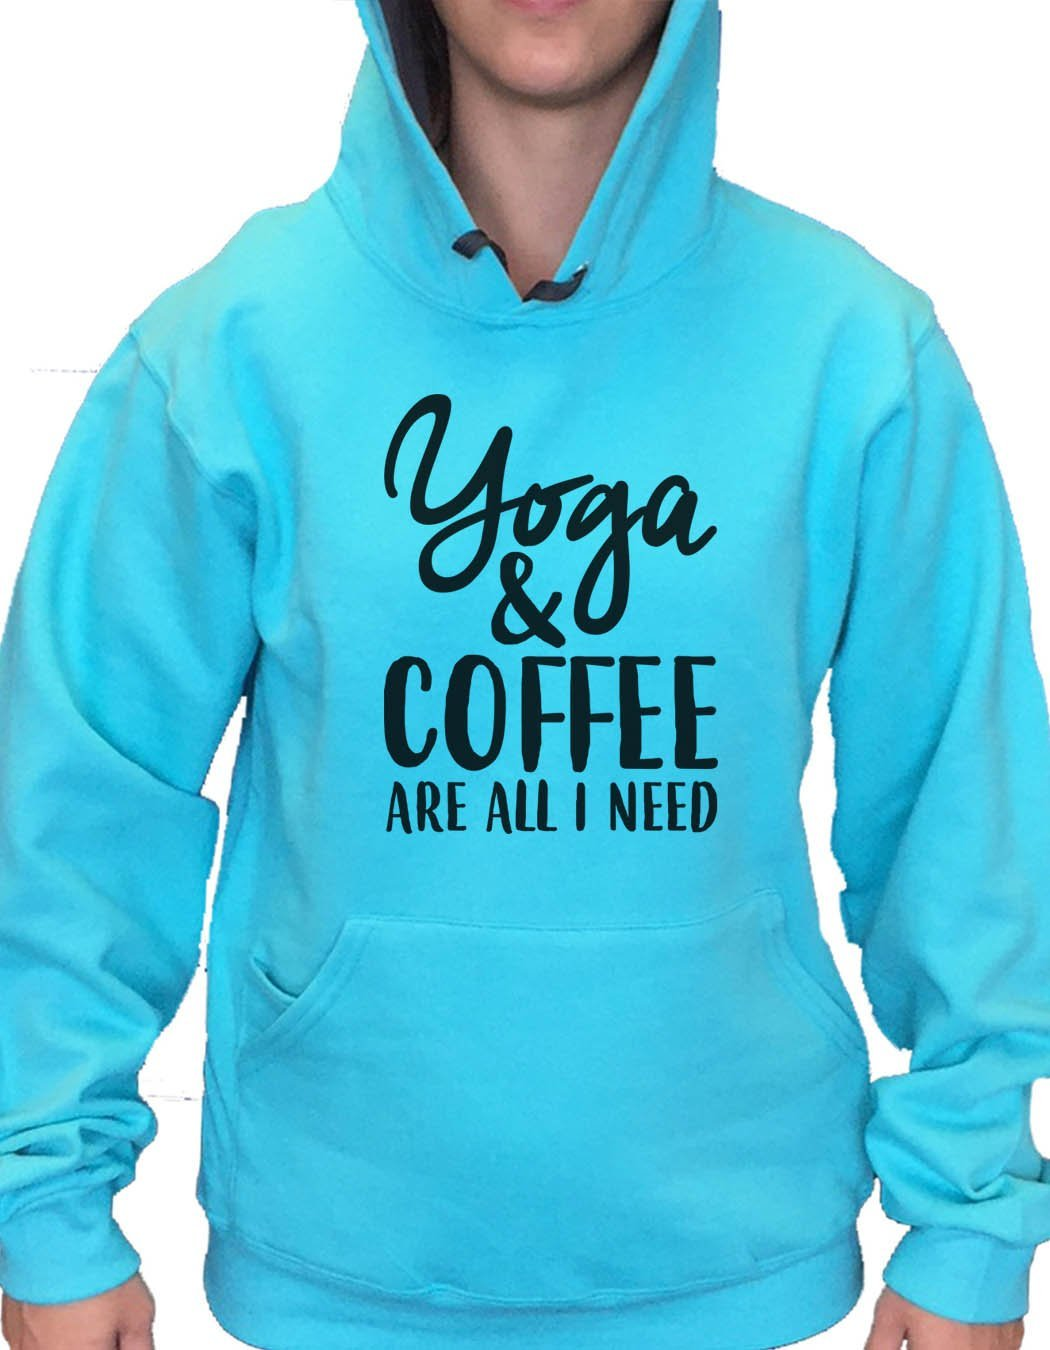 UNISEX HOODIE - Yoga & Coffee Are All I Need - FUNNY MENS AND WOMENS HOODED SWEATSHIRTS - 2174 Funny Shirt Small / Turquoise